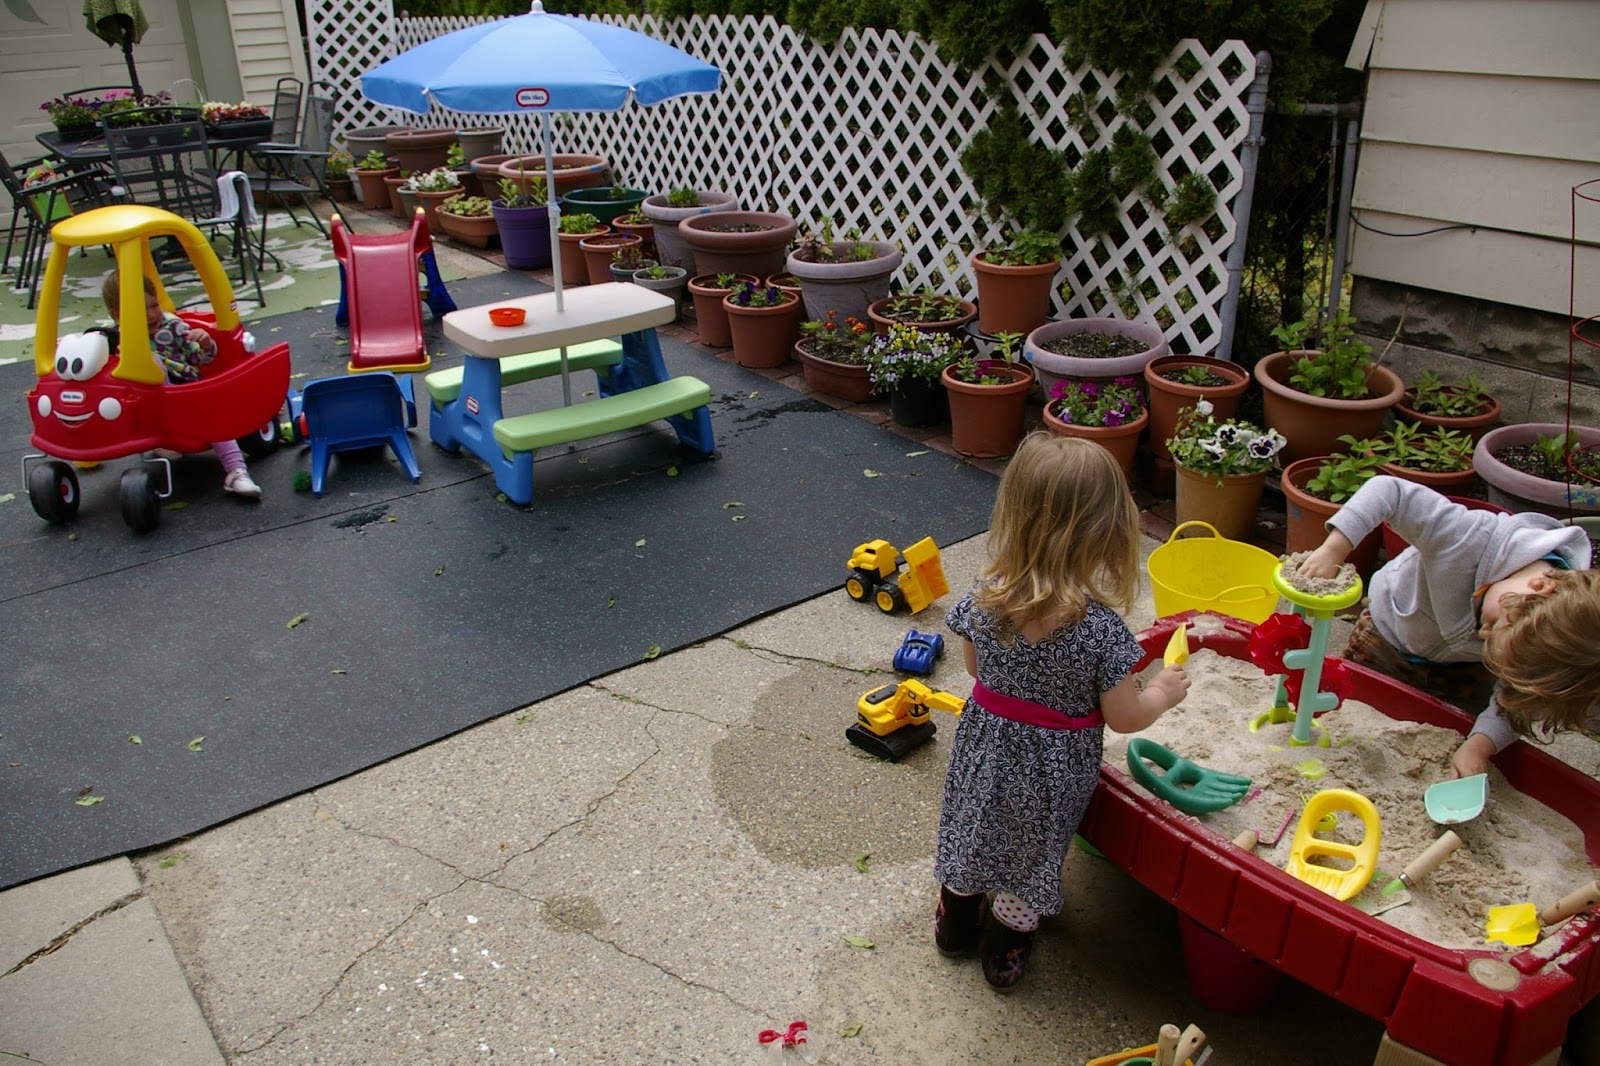 Tadpoles Pollywogs Froglets Daycare Outdoor Play Area